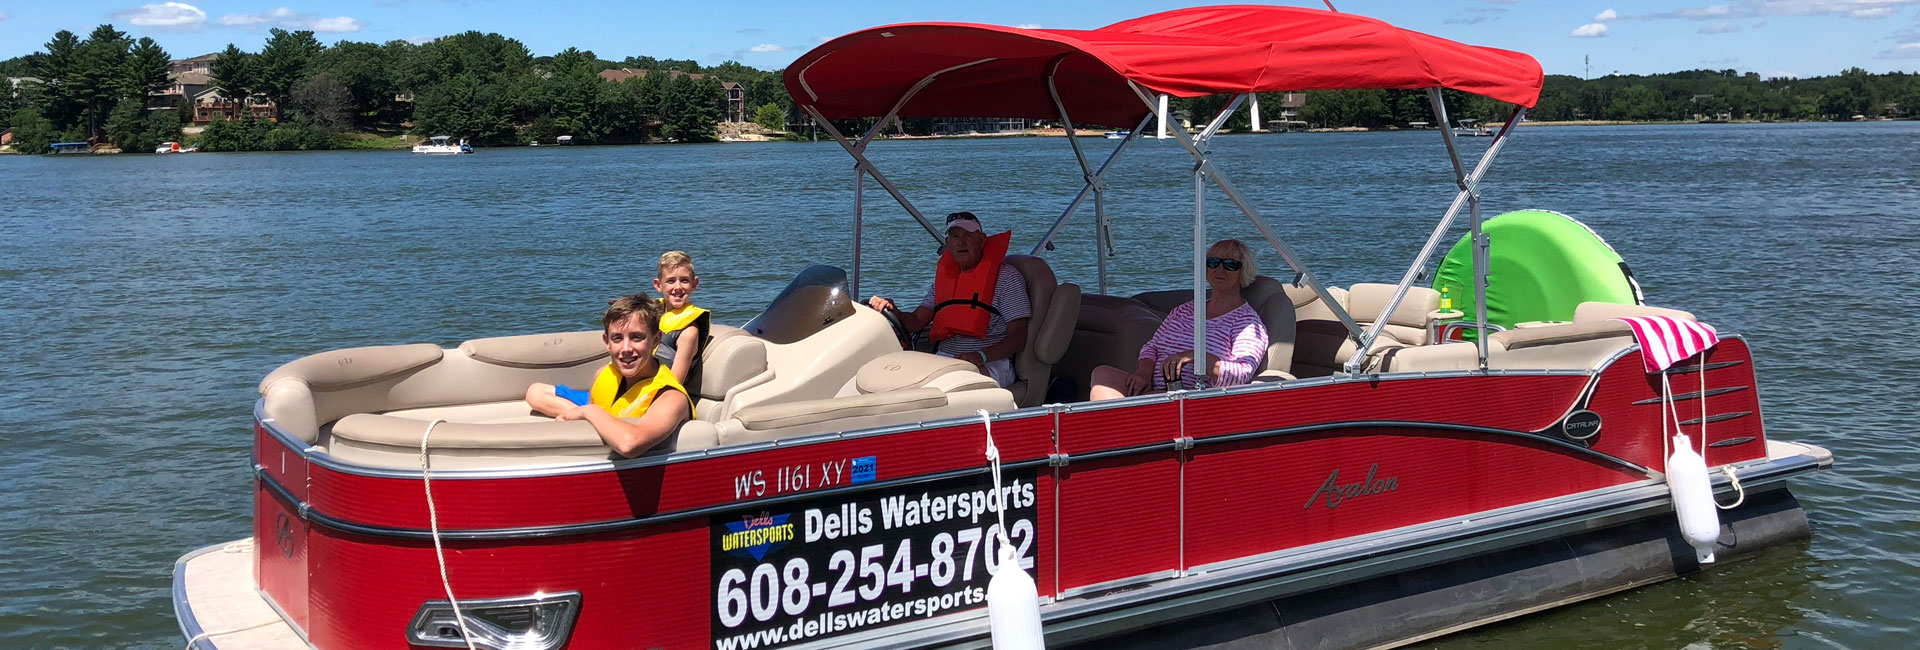 Tubing Pontoon Rentals on Lake Delton in Wisconsin Dells